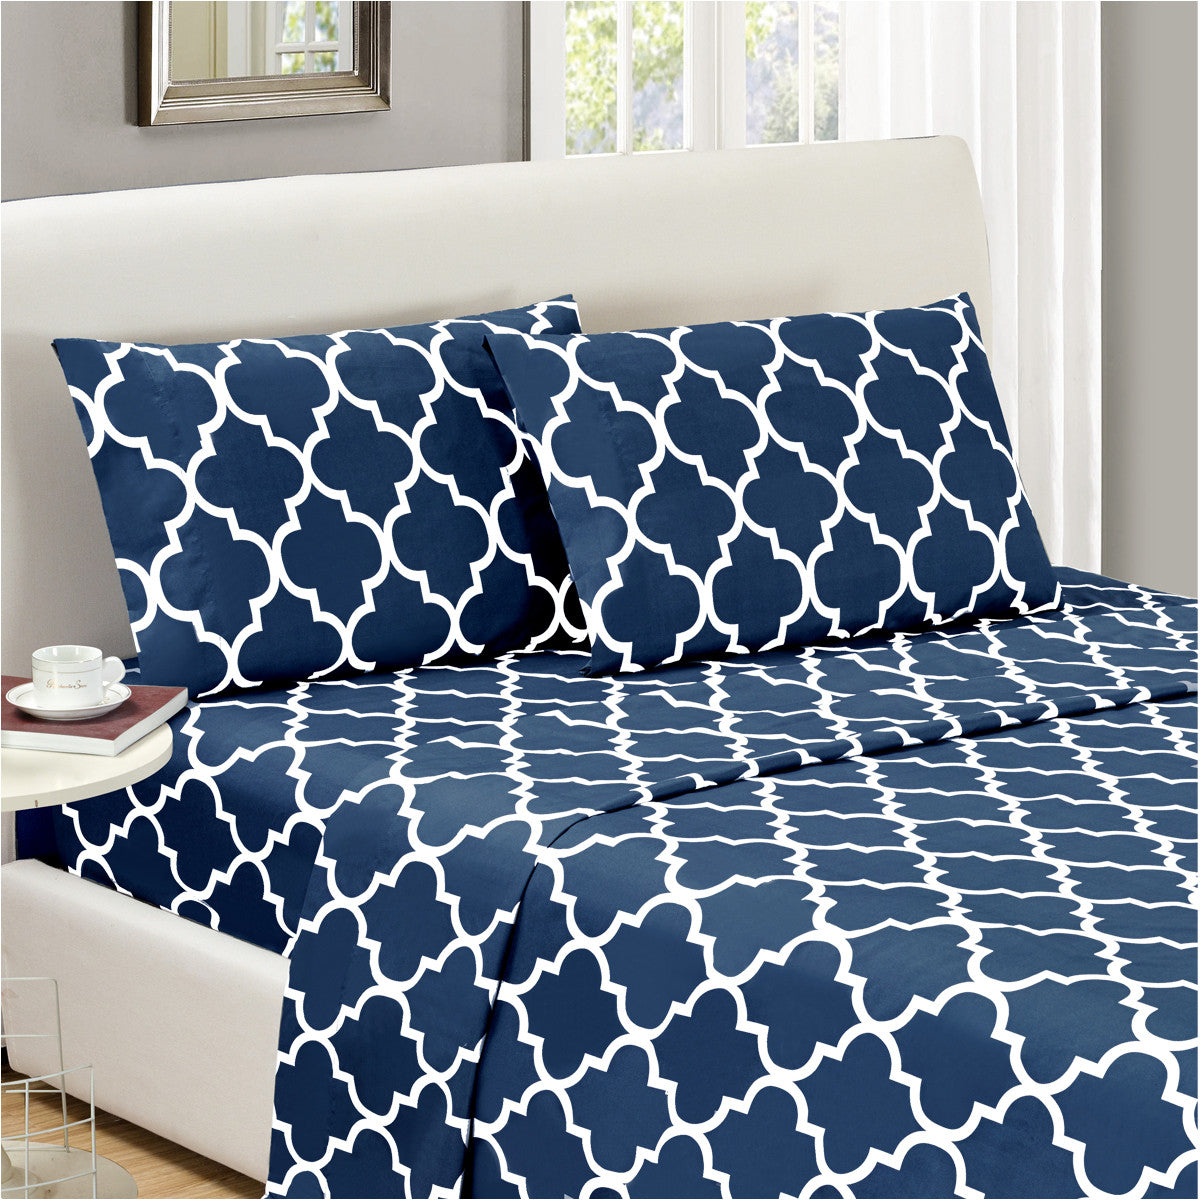 quatrefoil sheet set  mellanni fine linens -  quatrefoil sheet set